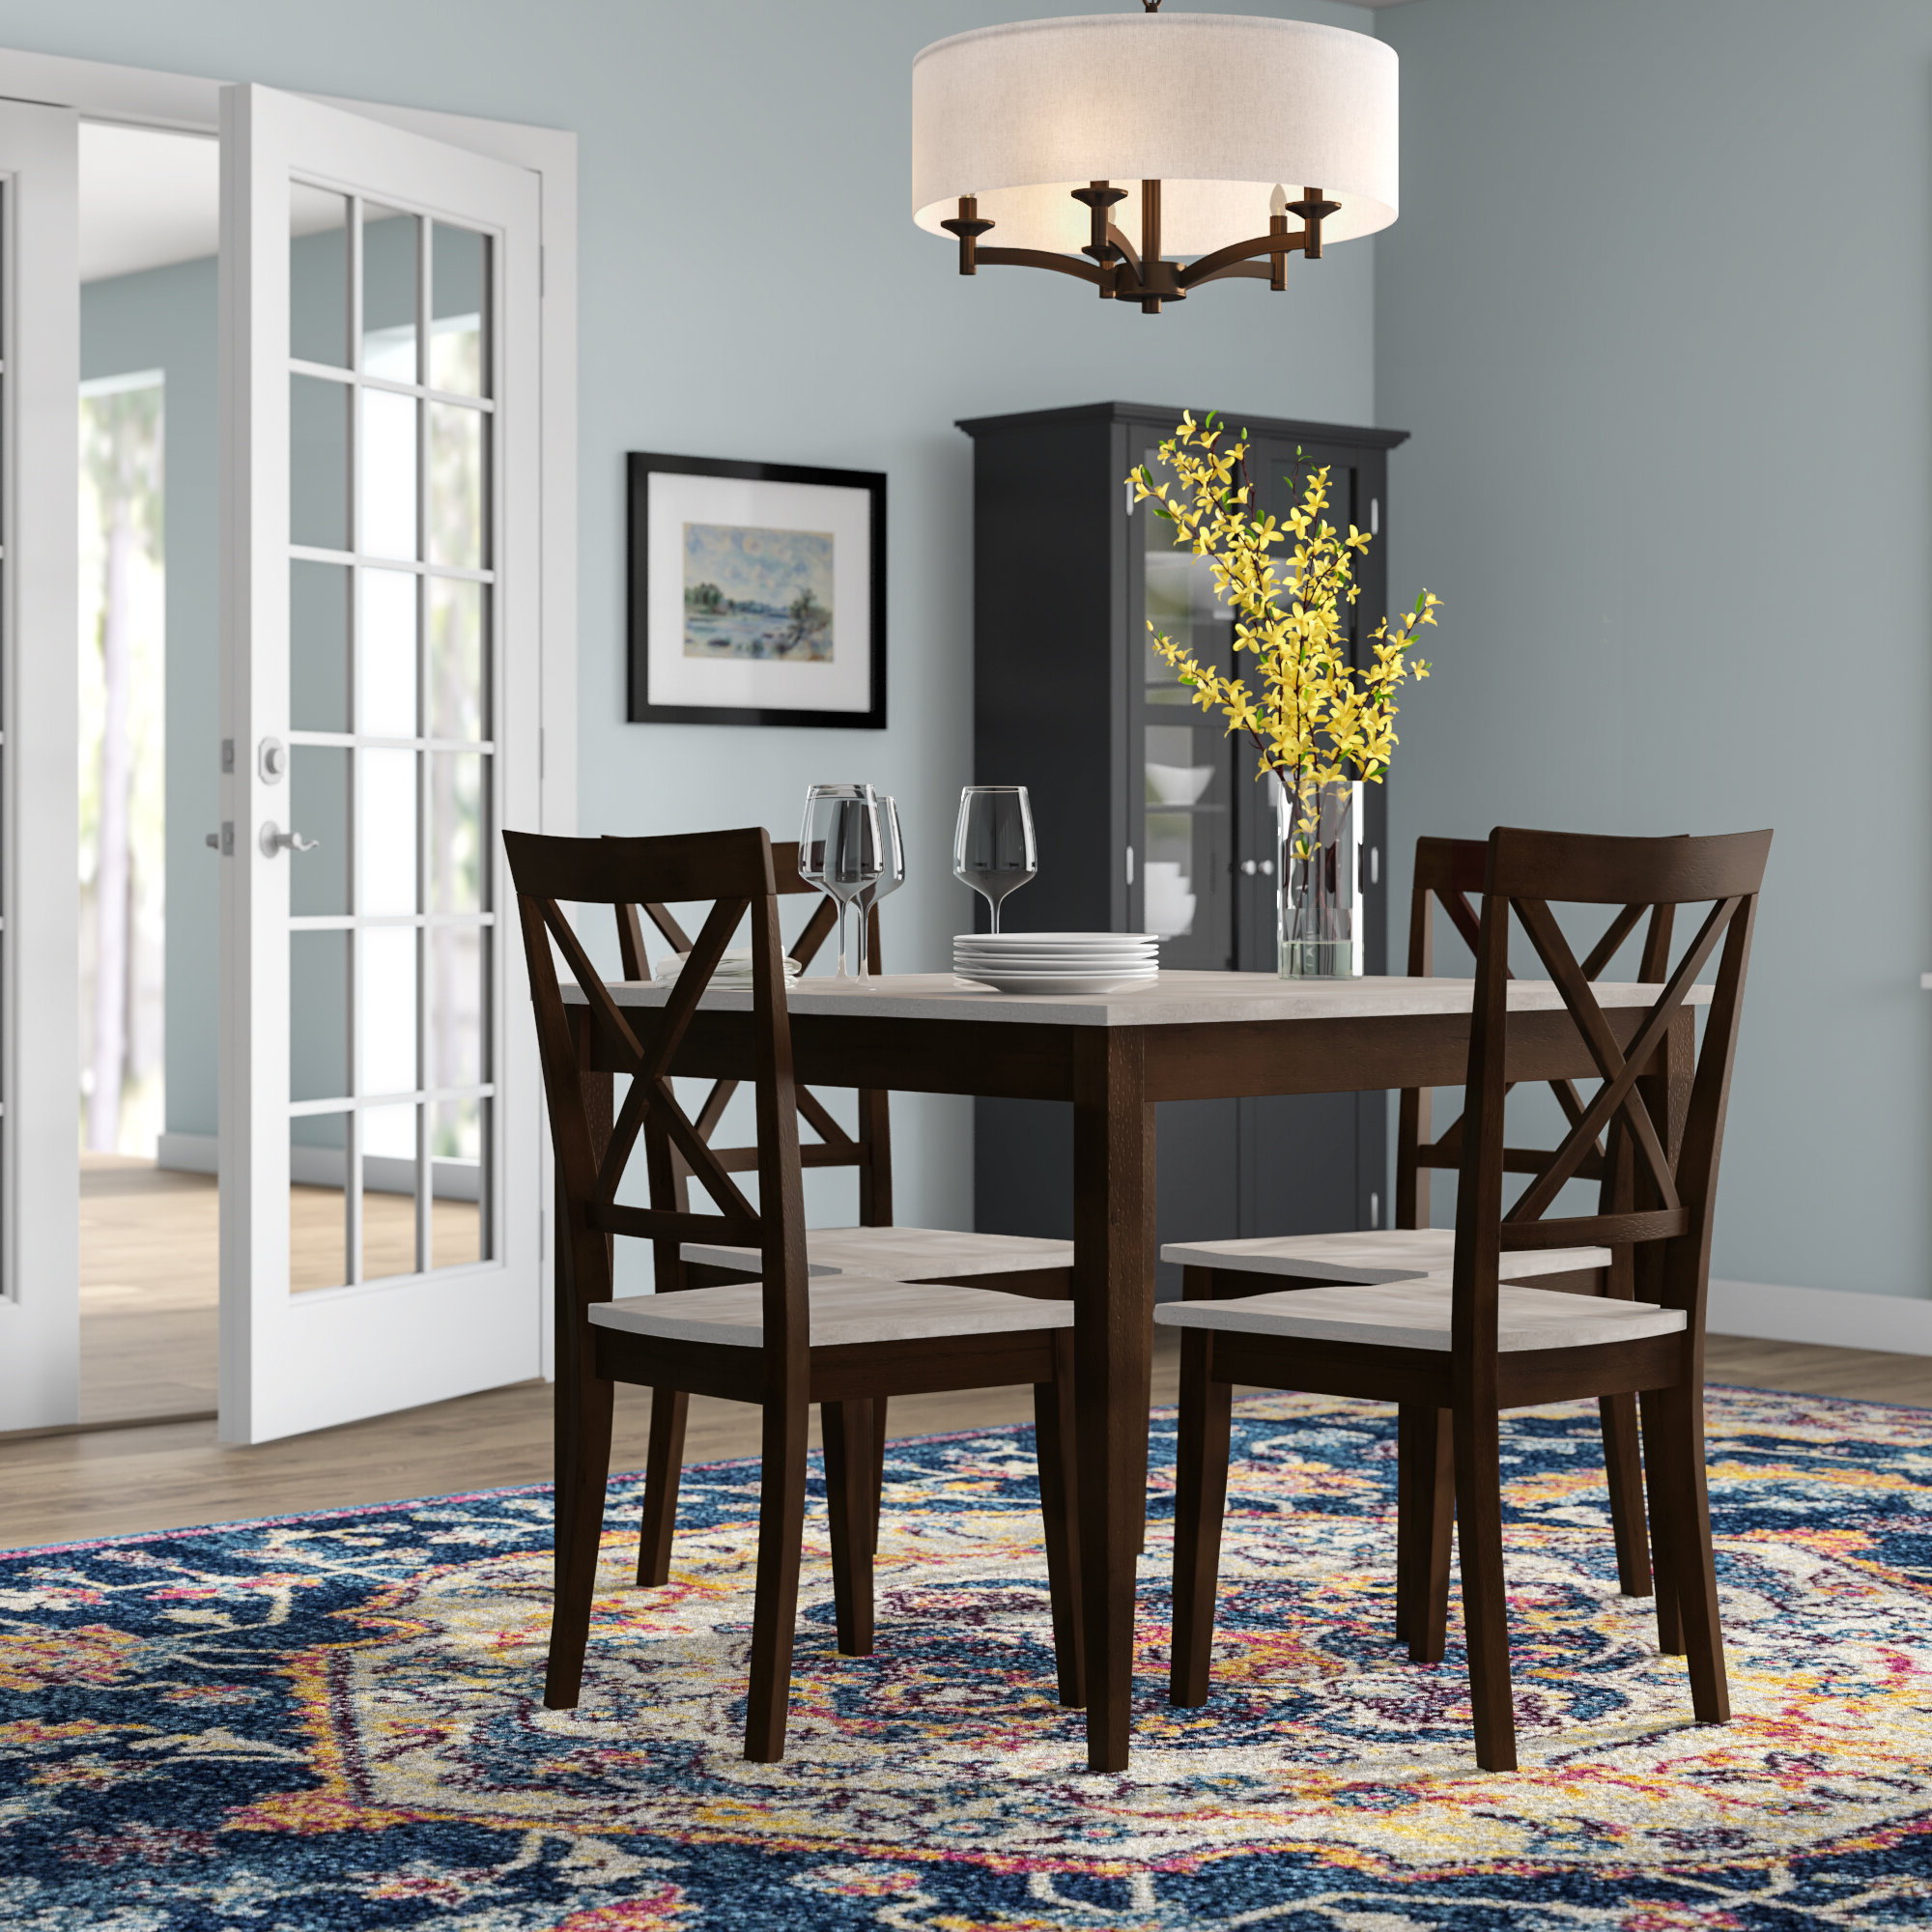 Partin 3 Piece Dining Sets Regarding Recent Small Dining Sets You'll Love In (View 14 of 20)